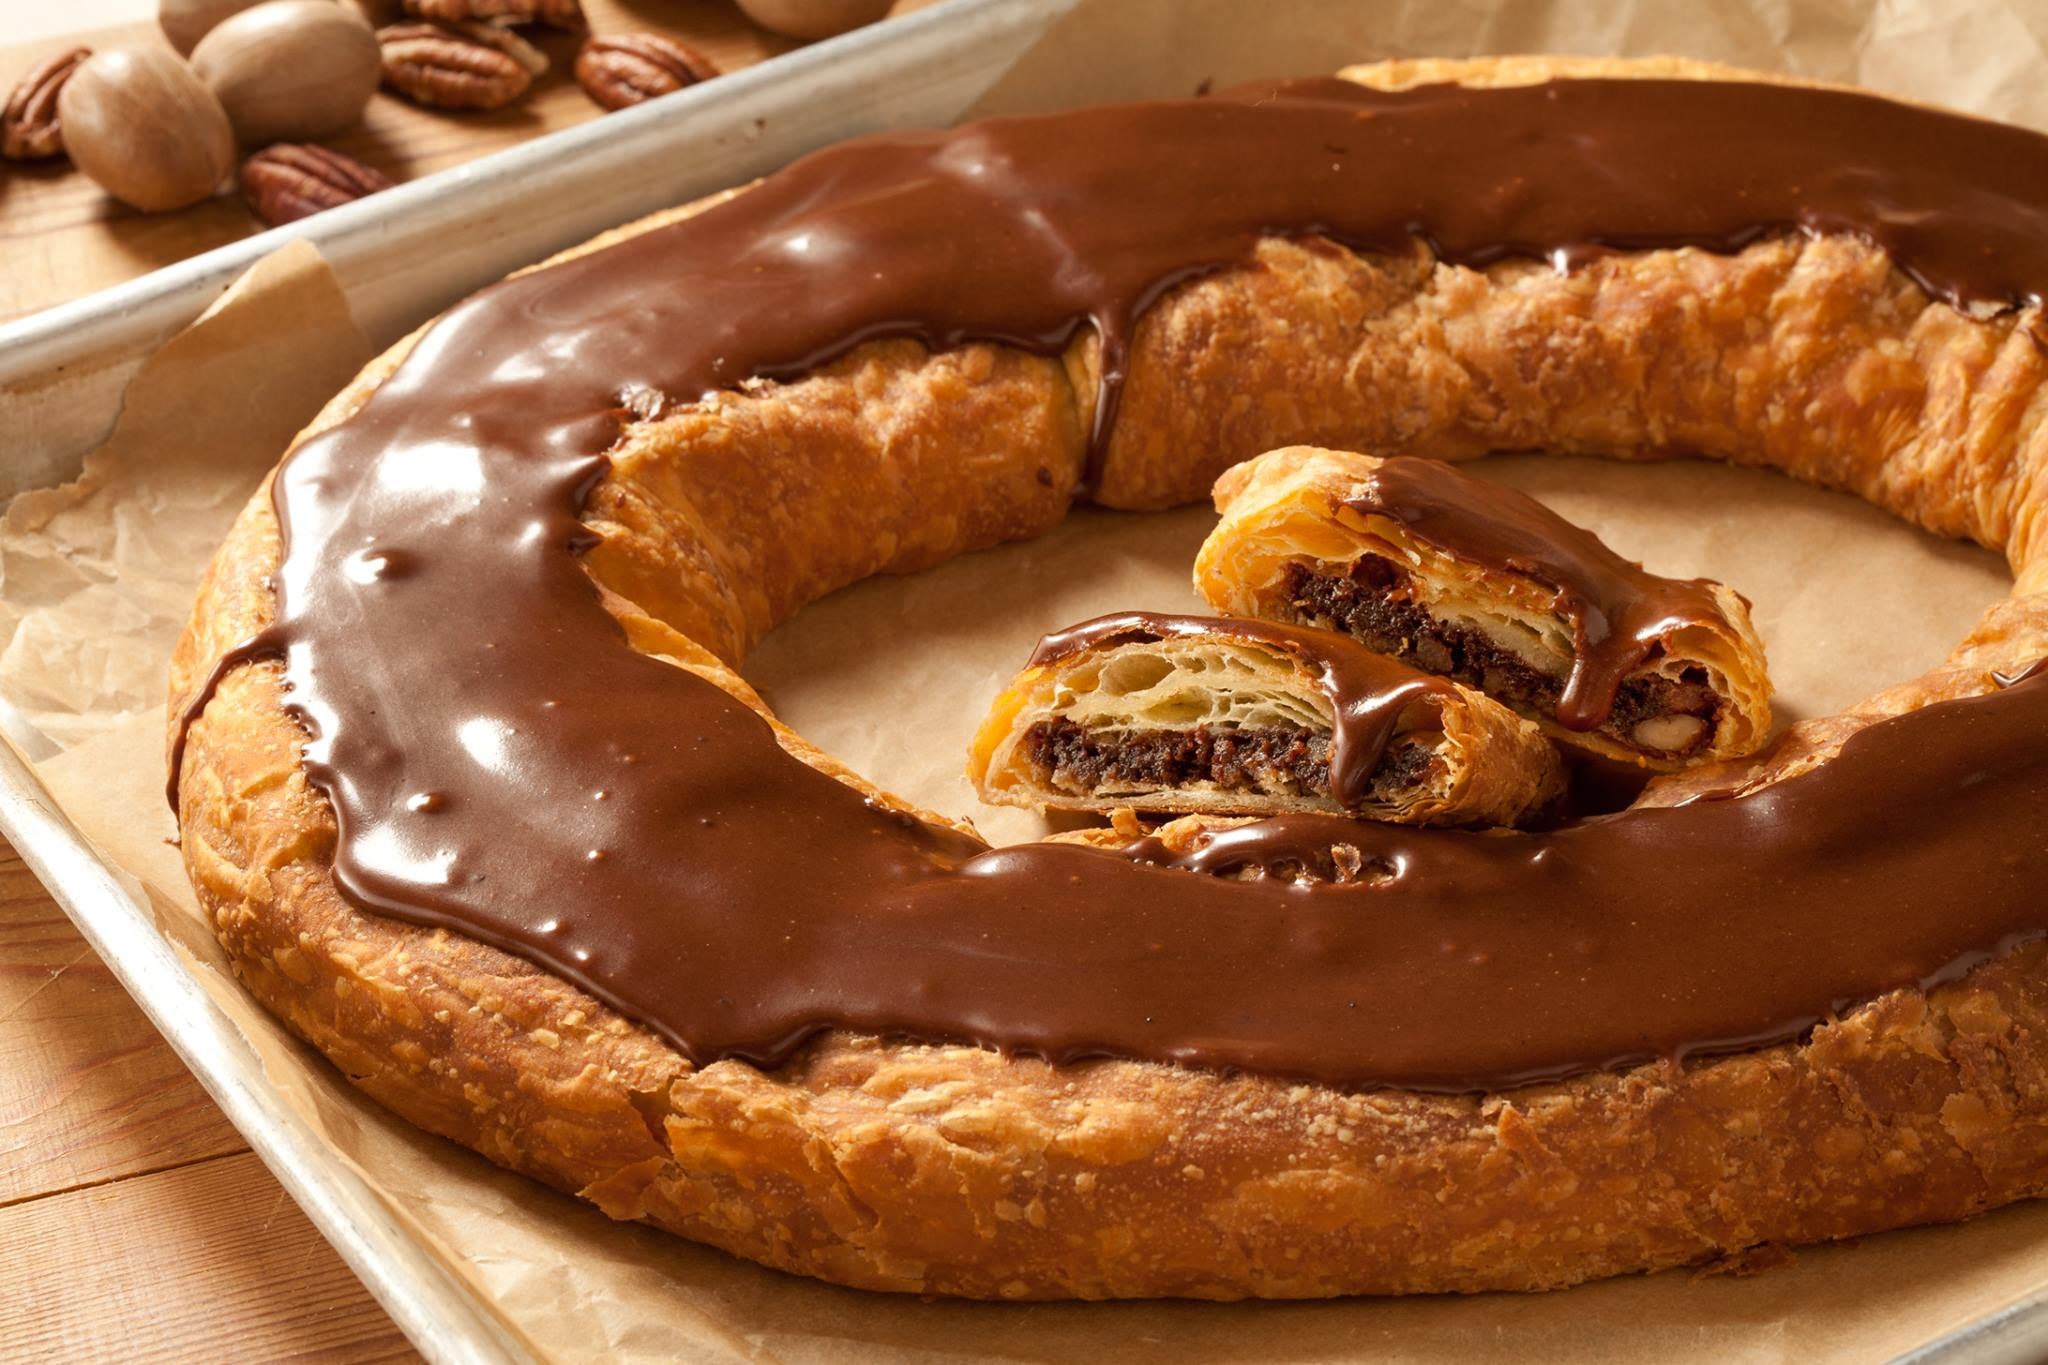 Chocolate pecan kringle from O&H Danish Bakery of Racine, WI